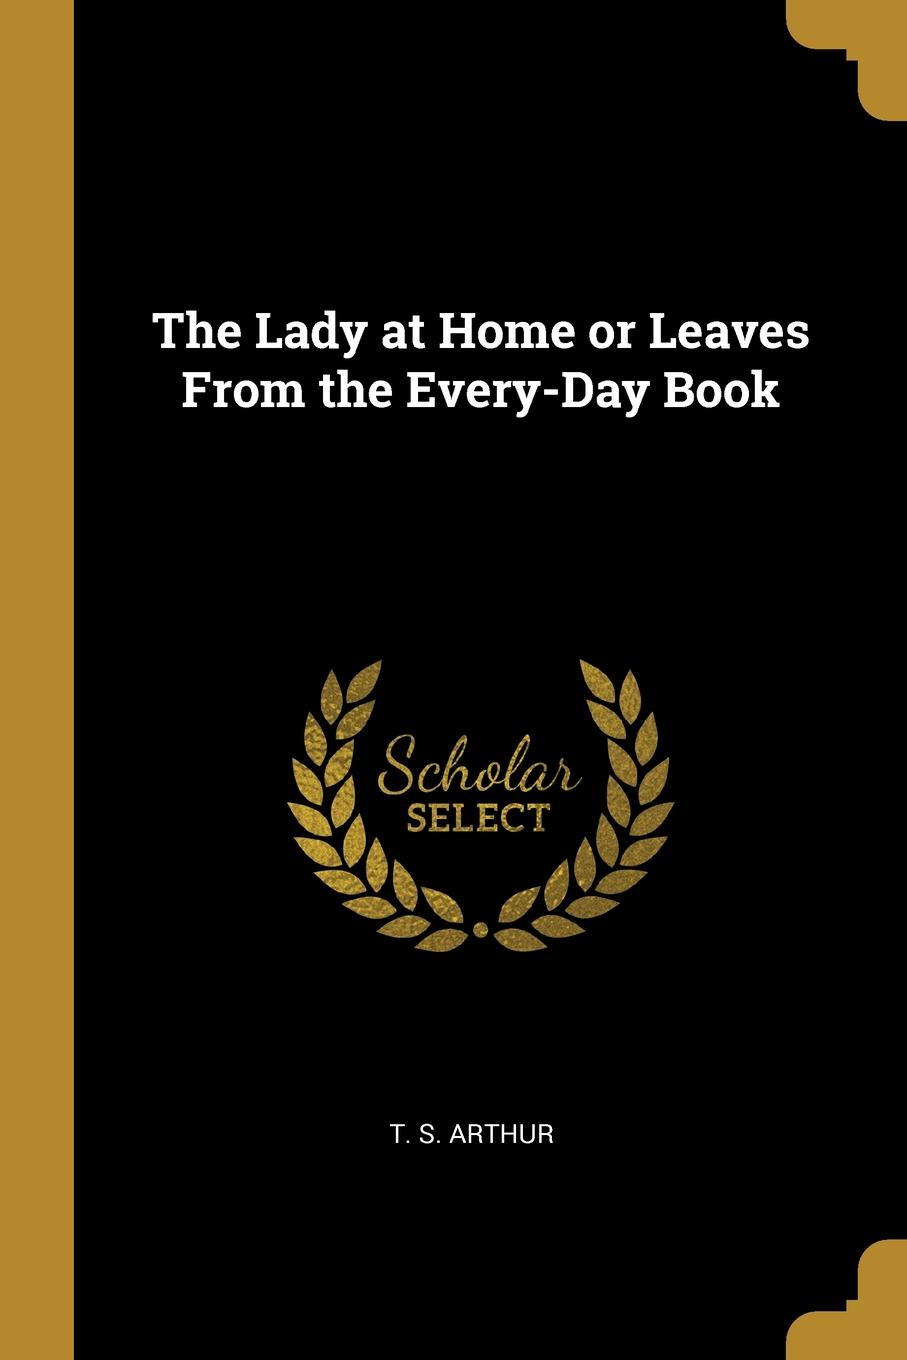 T. S. Arthur. The Lady at Home or Leaves From the Every-Day Book